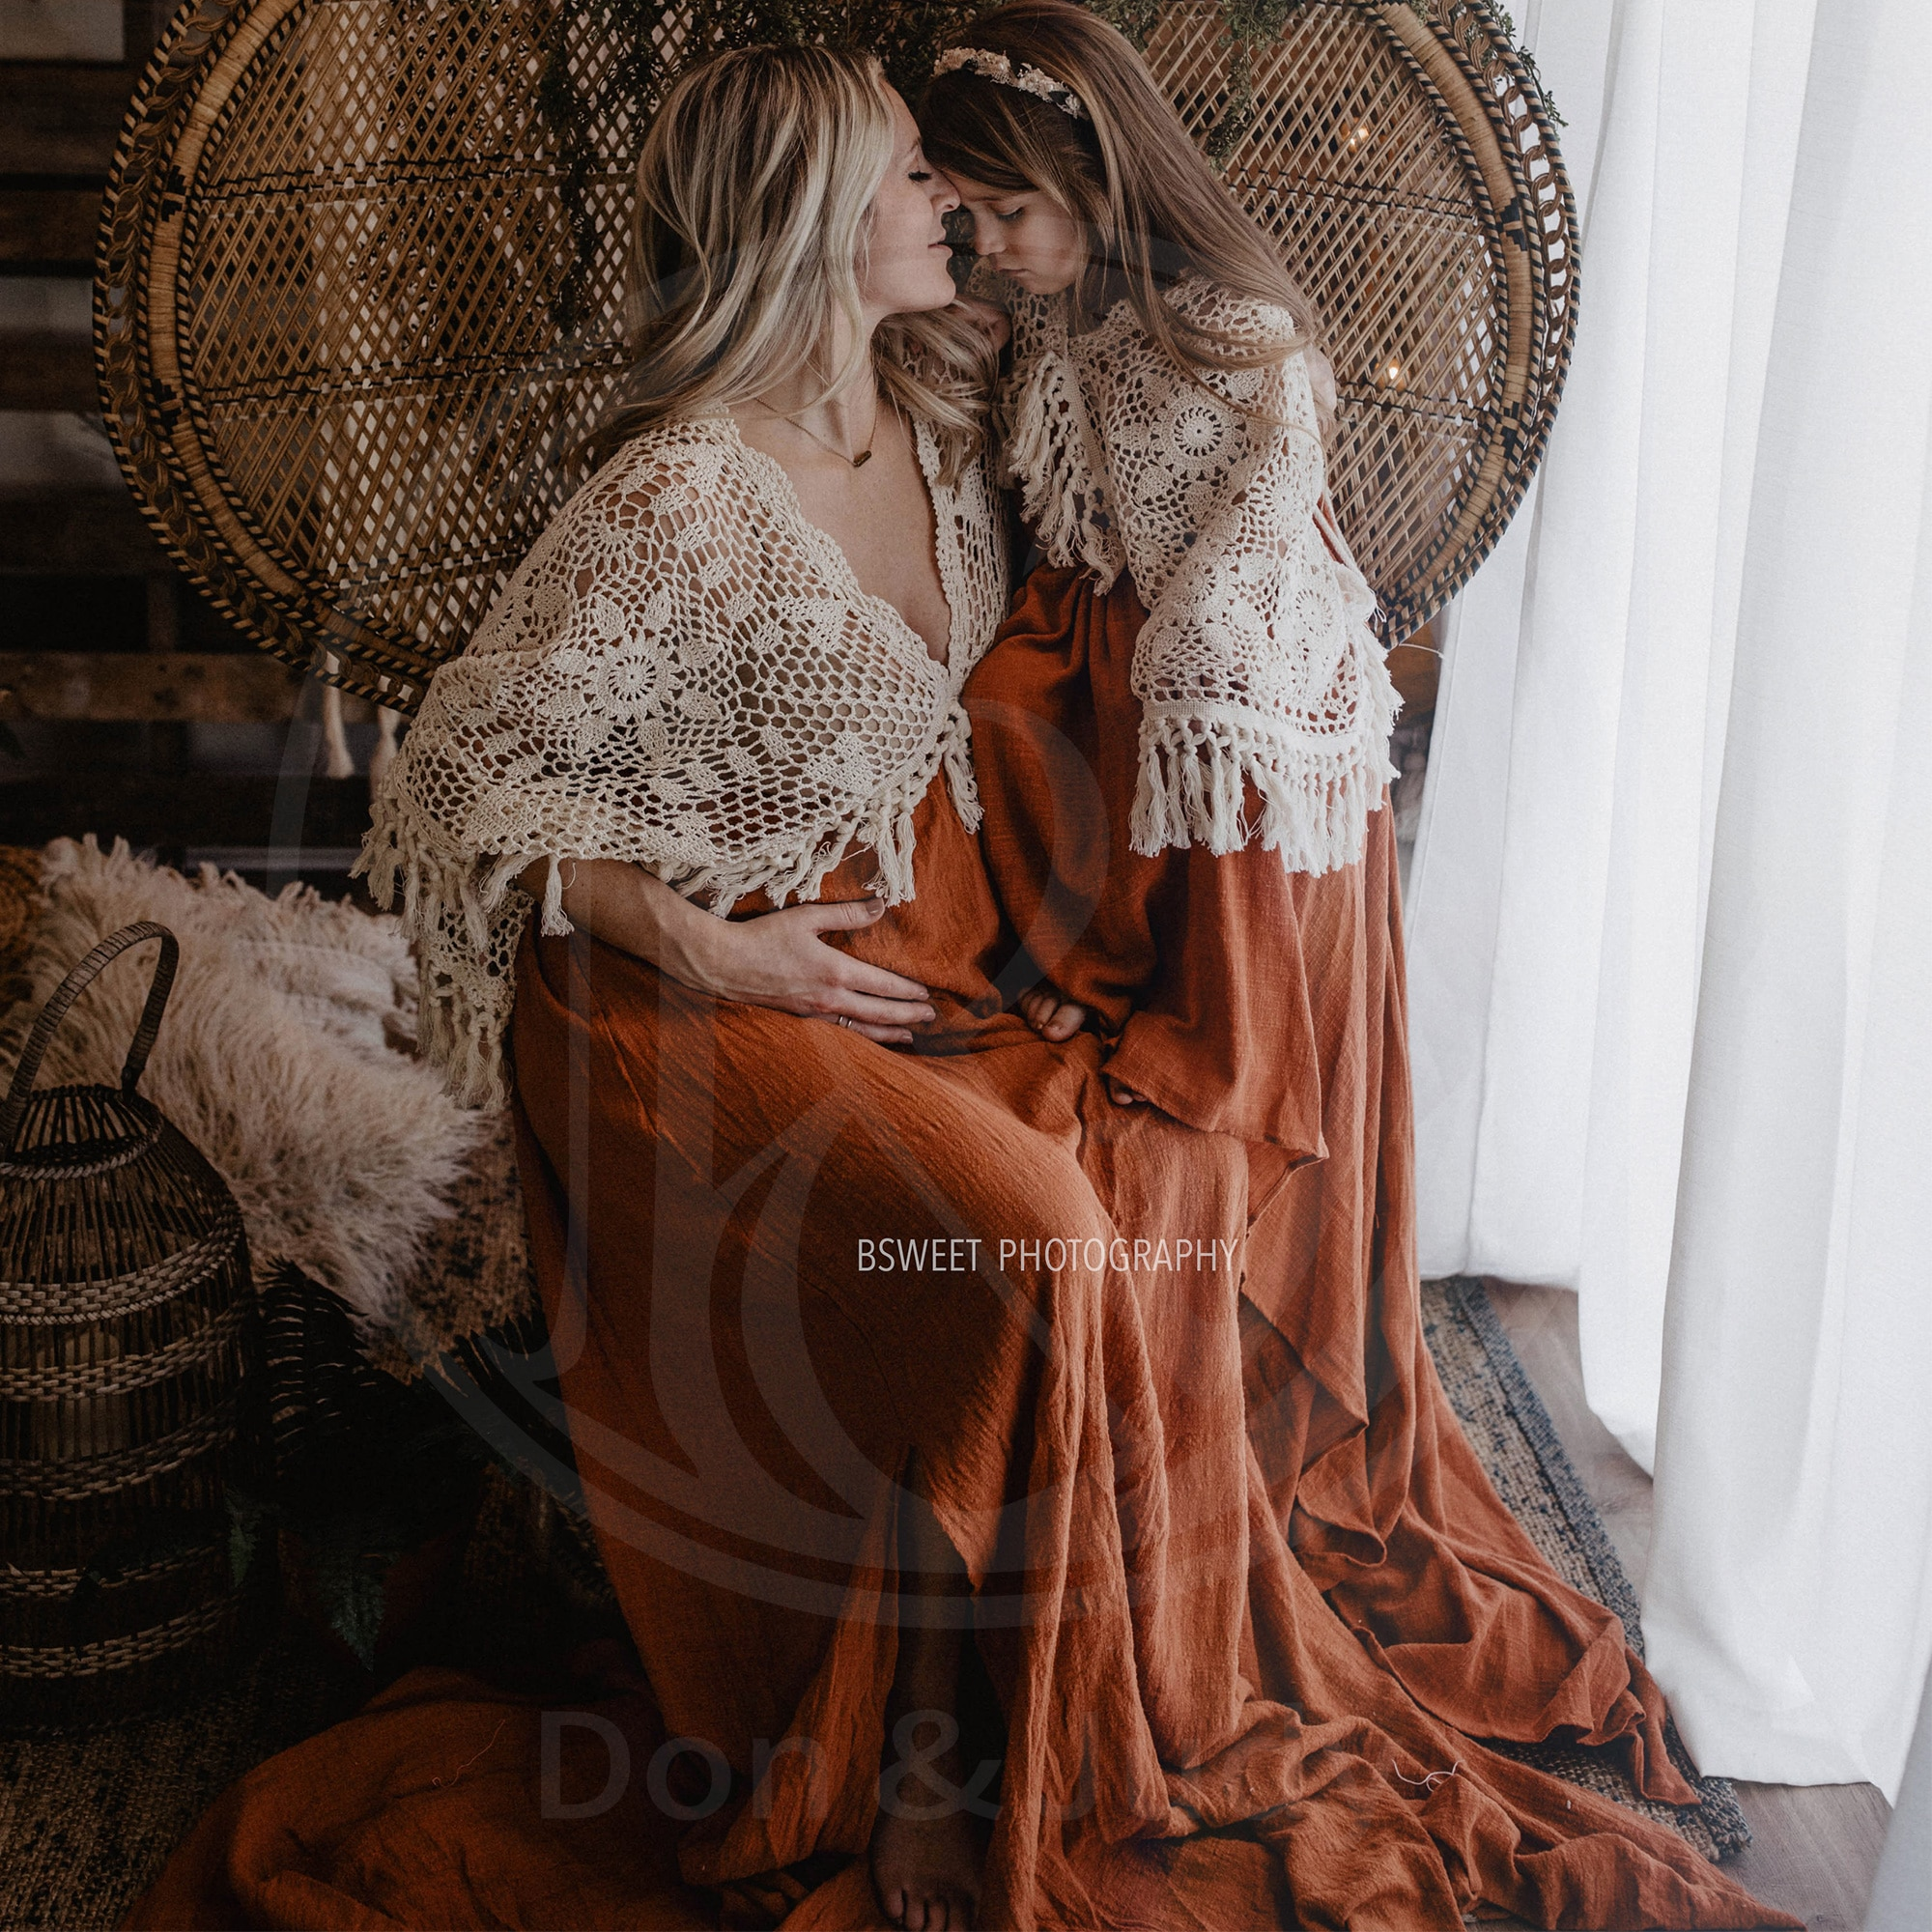 A Set Vintage Boho Cotton Photo Shoot Mom and Daughter Robe Long Dresses Evening Party Costume for Women Photography Accessories enlarge